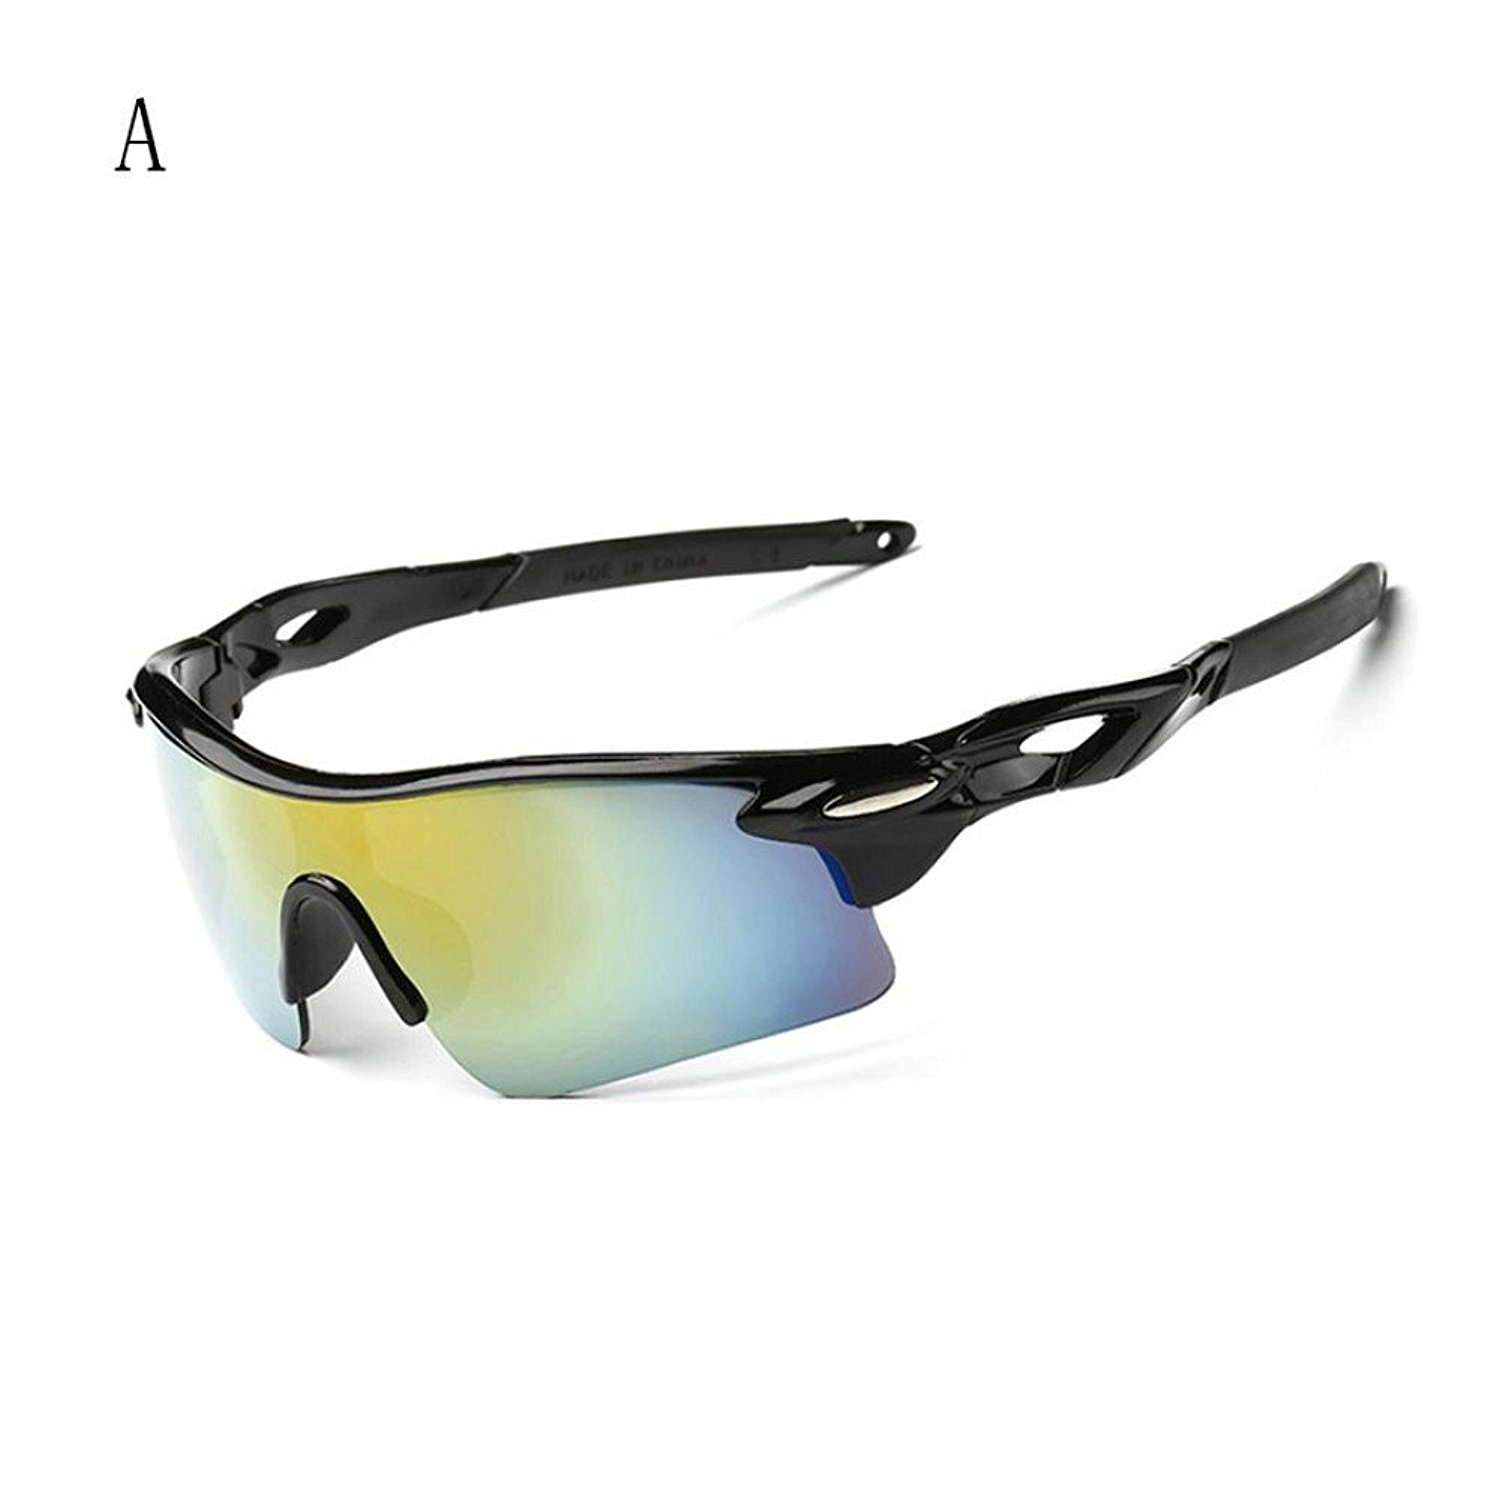 0d17e1e5df7b Get Quotations · Flank Outdoor Sport Polarized Glasses,Cycling UV Eye  Protection Windproof Glasses With Lens For Outdoor